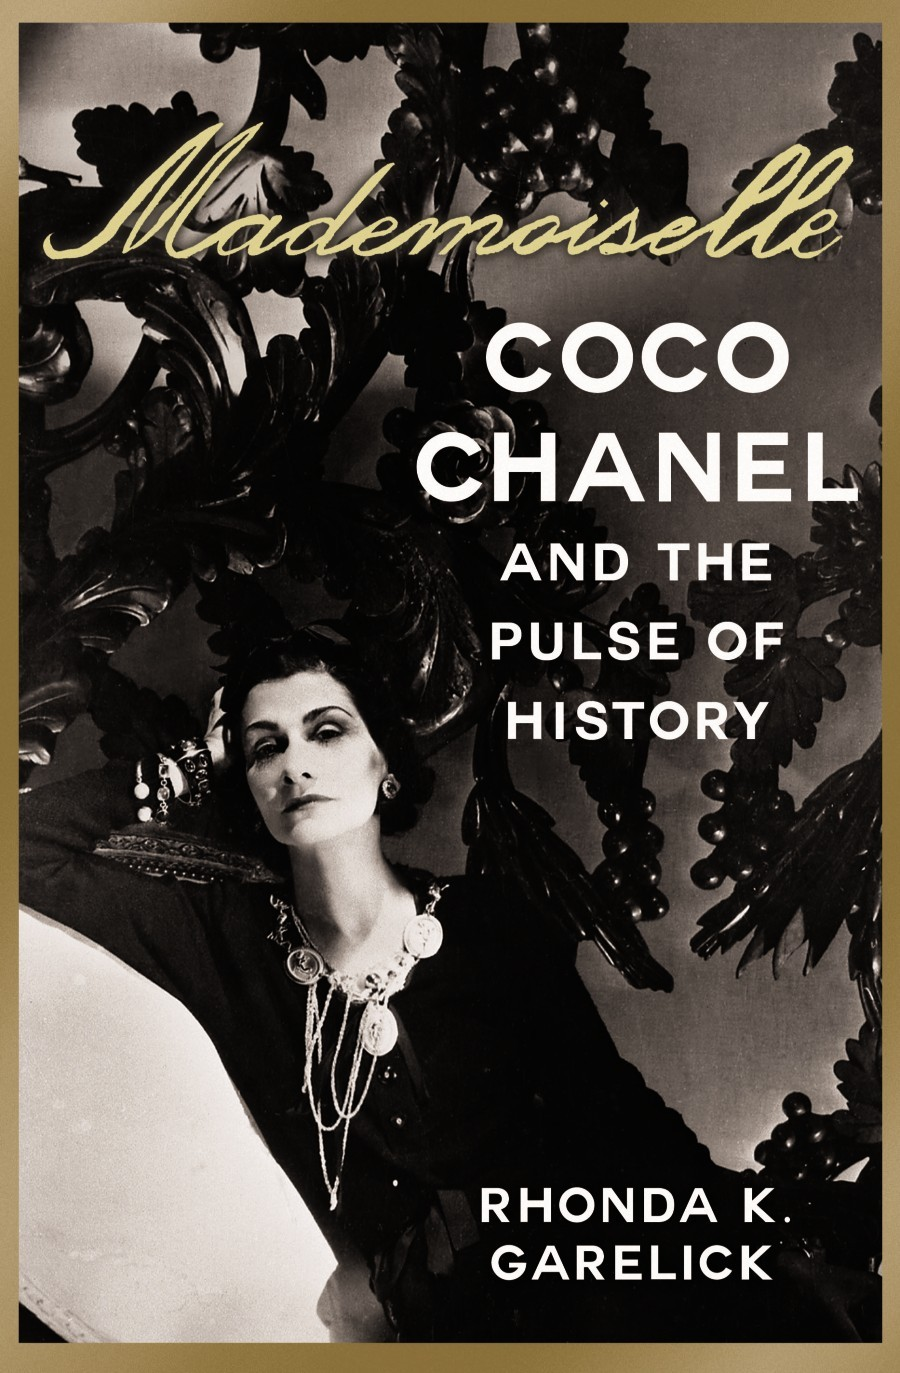 Mademoiselle Coco Chanel And The Pulse Of History Apparel